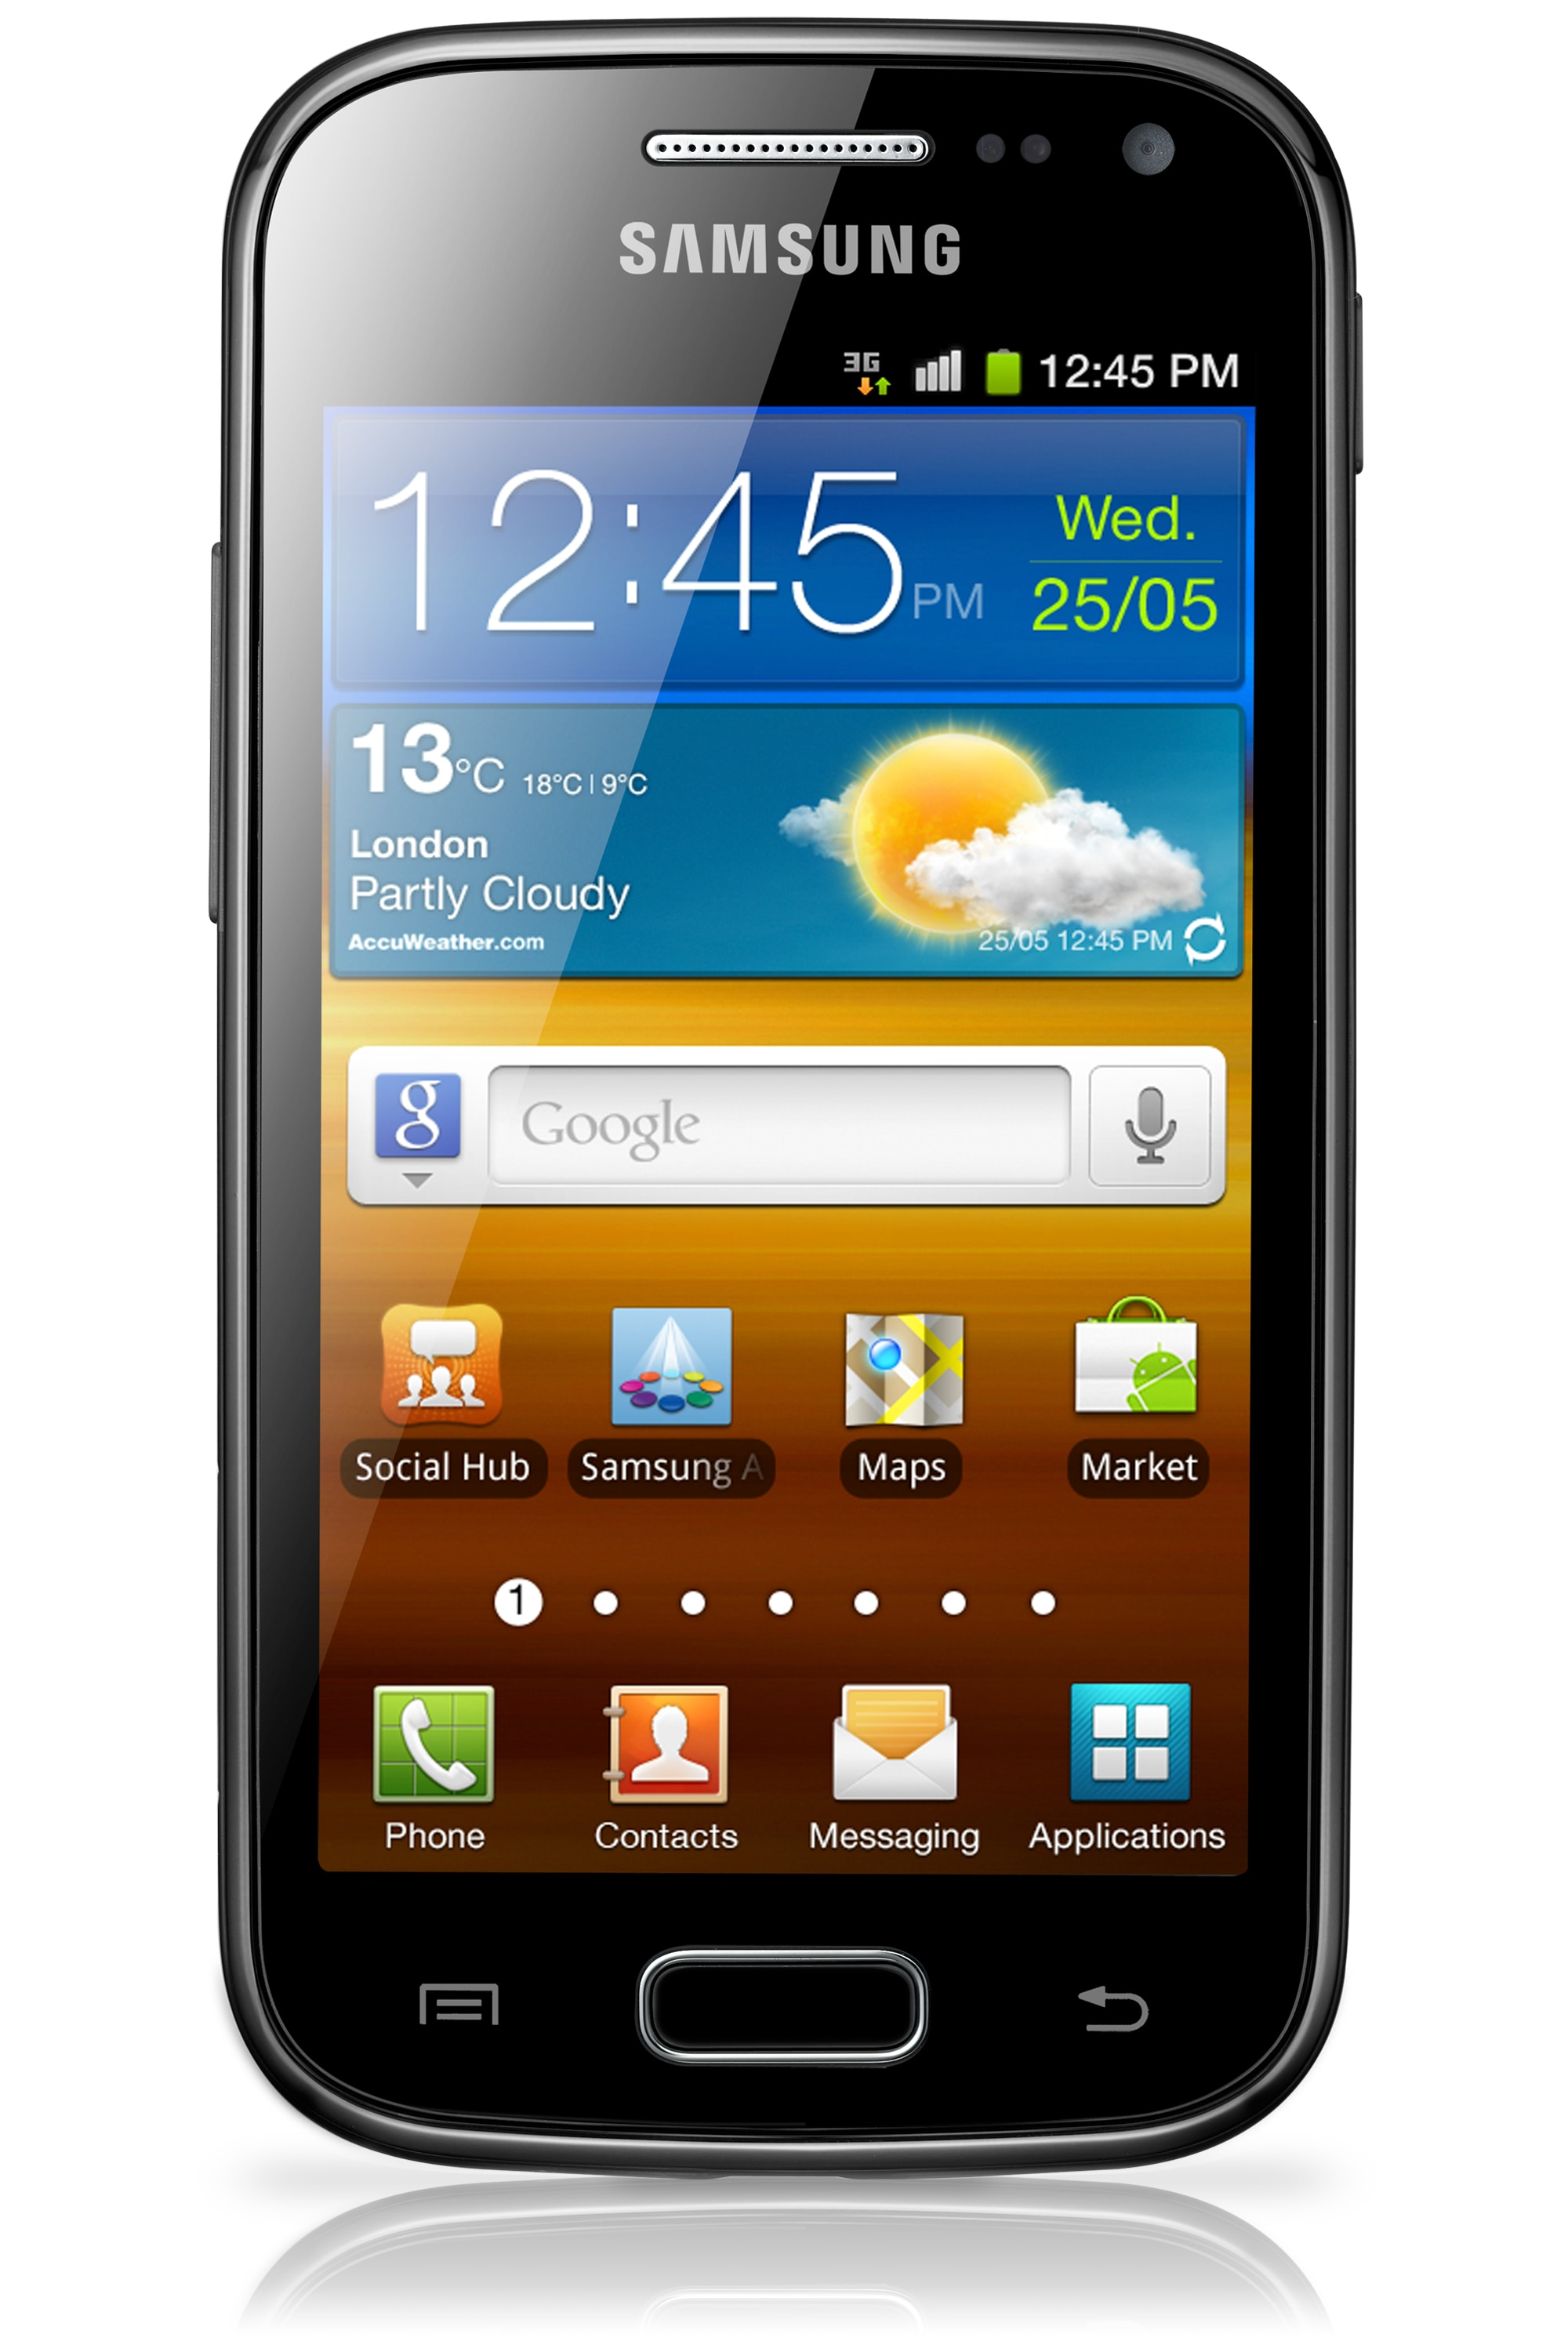 Samsung Galaxy Ace 2 - Android 2.3 - 5MP Camera Phone